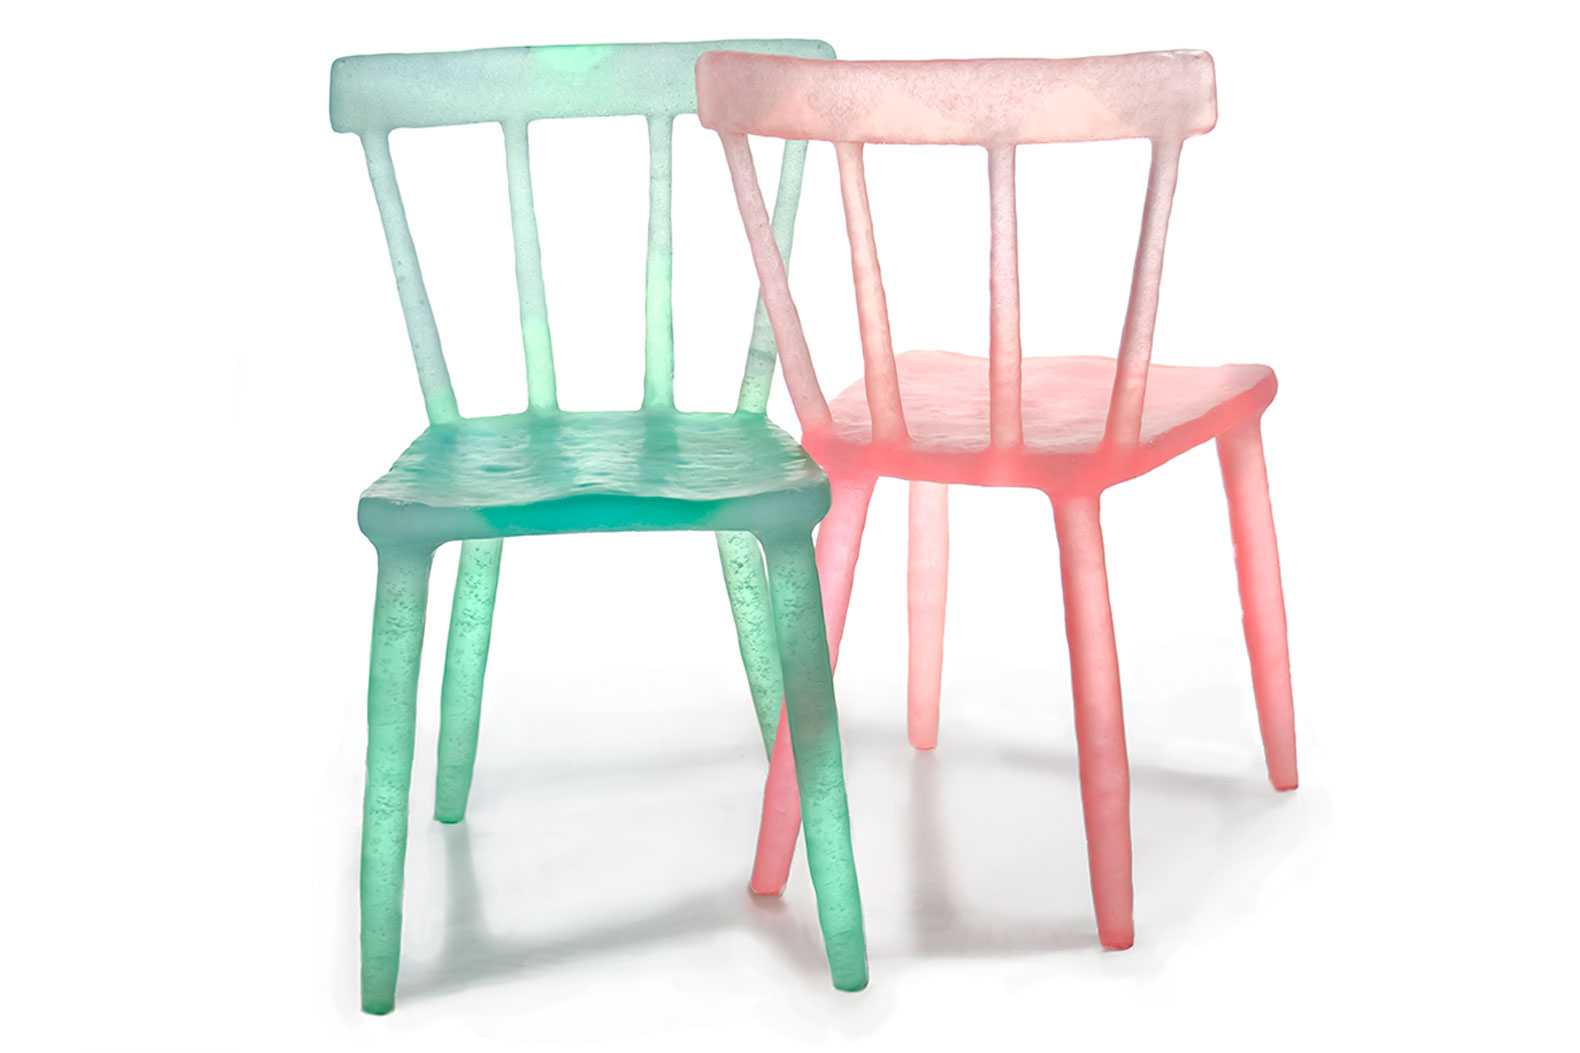 chair accessories design casters for chairs on carpet uk kim markel 39s candy colored recycled inject a juicy